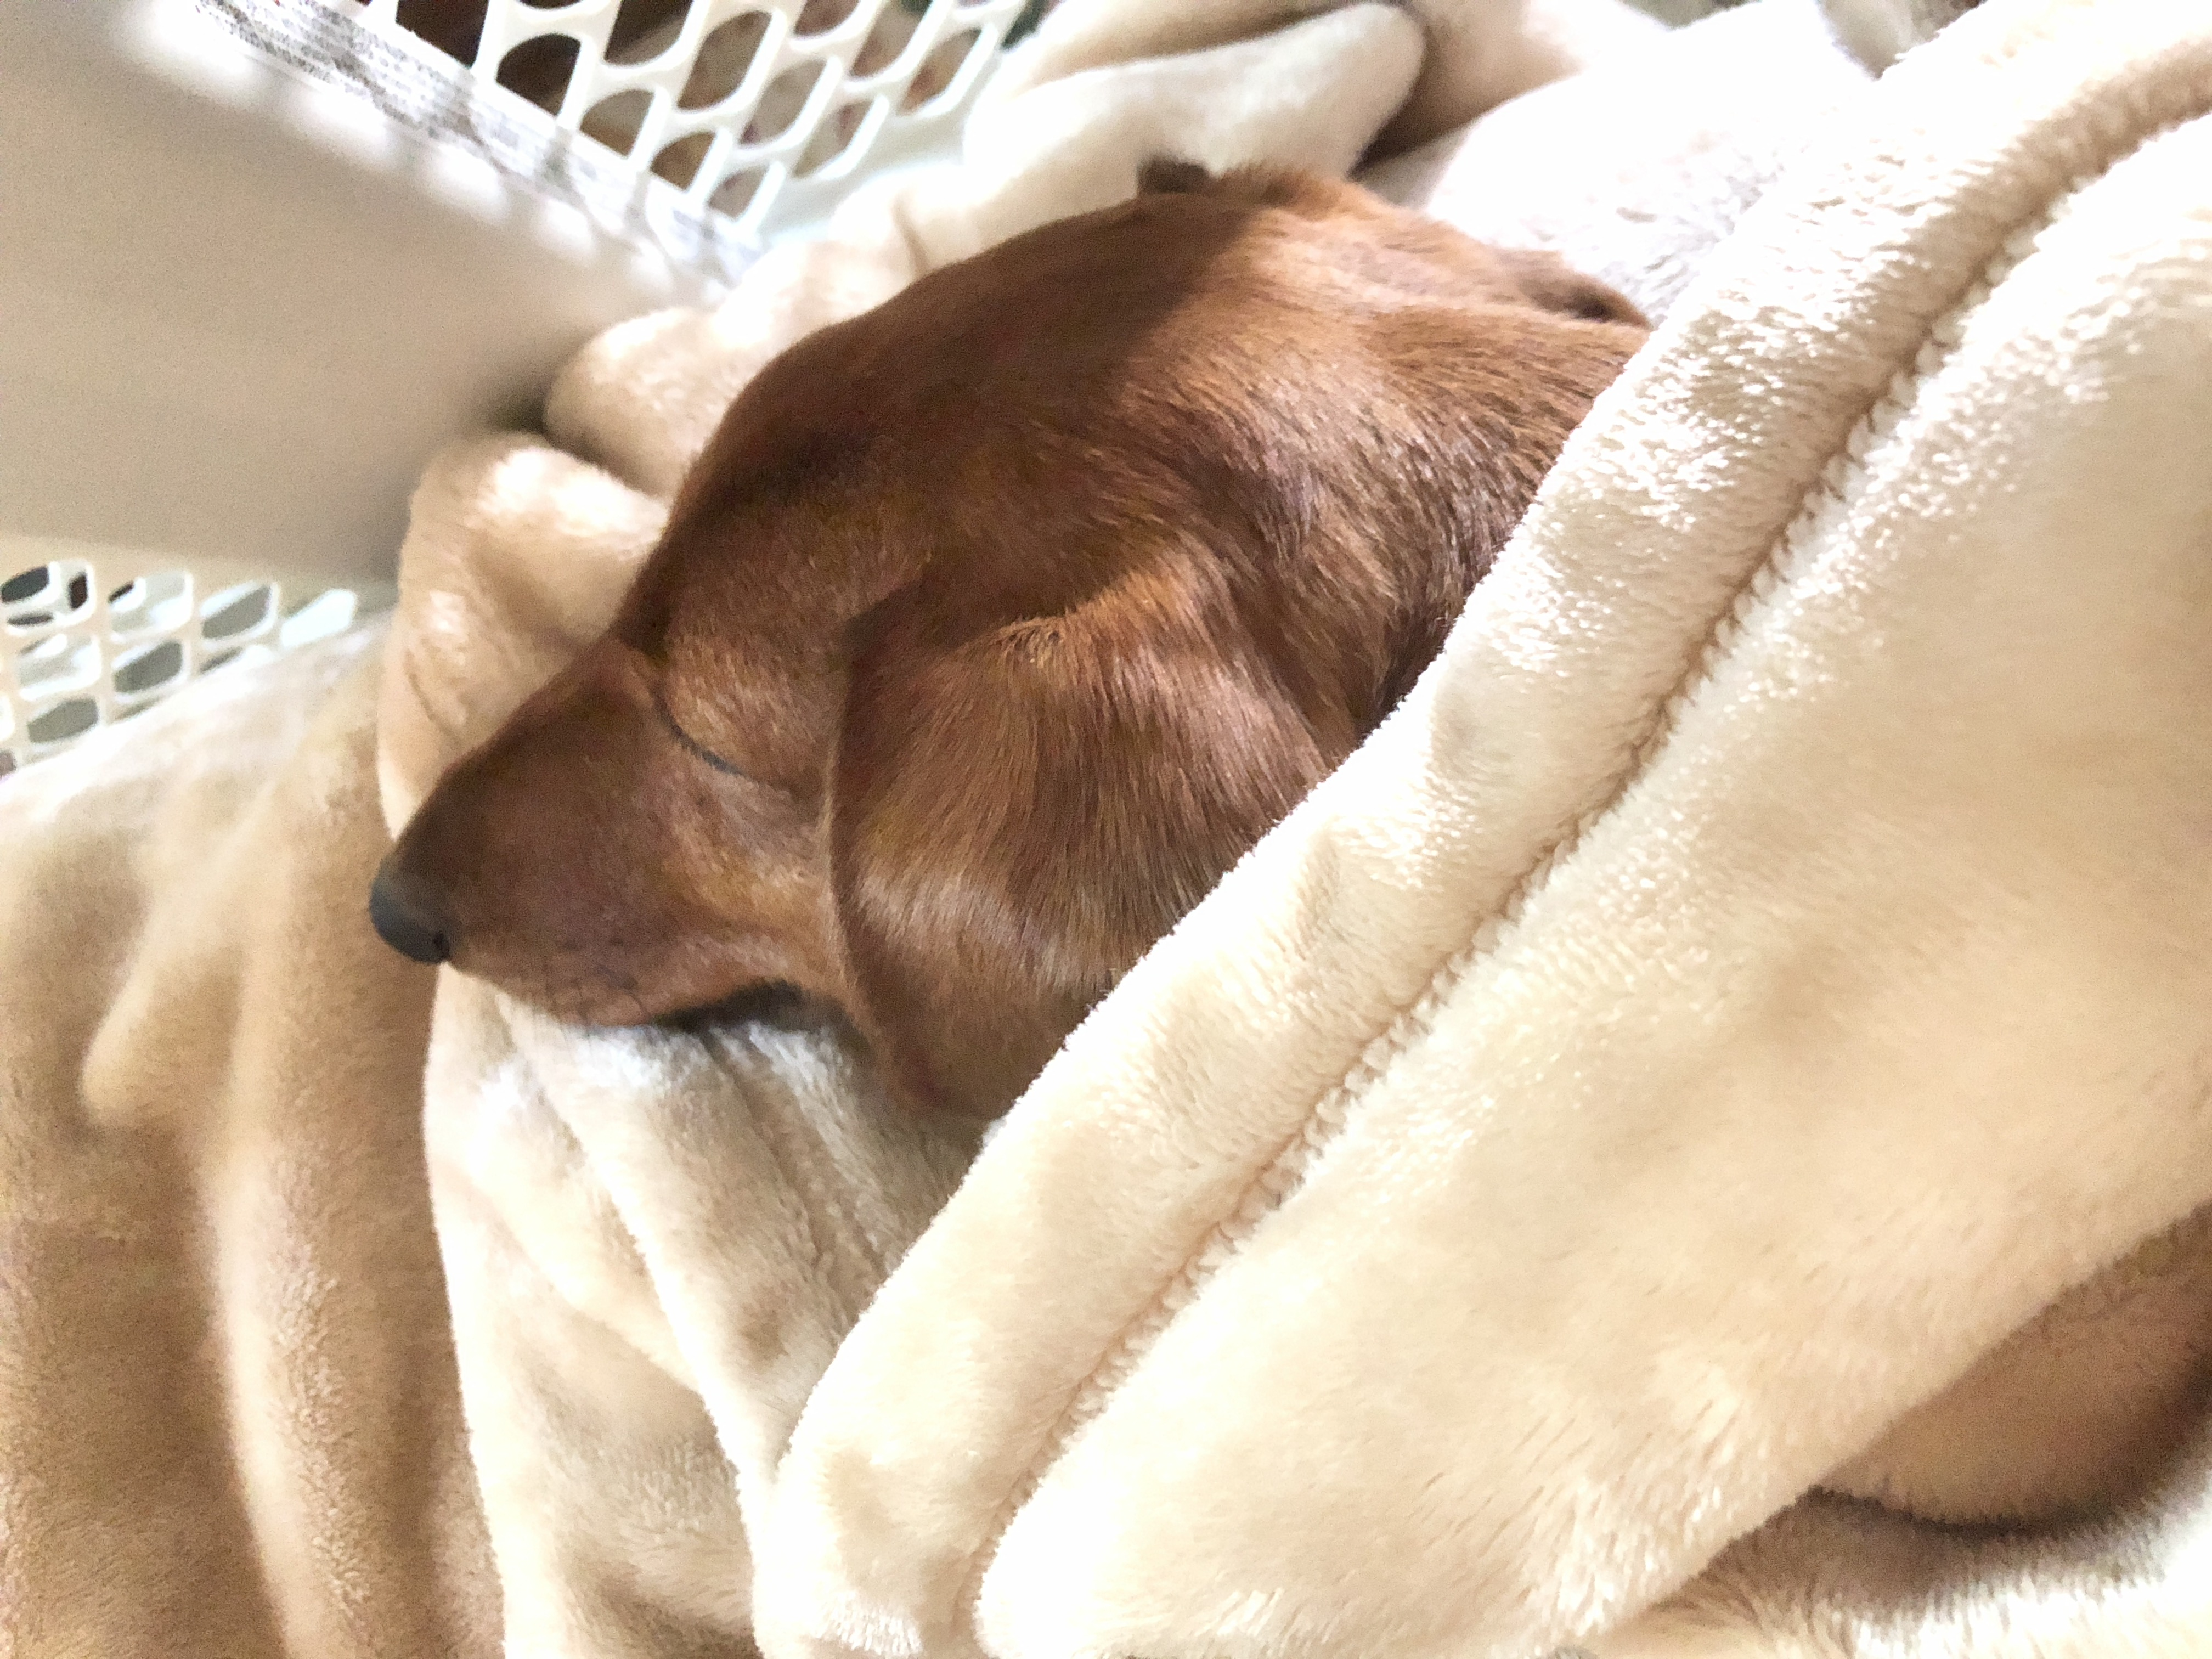 Short haired red dachshund in a yellow blanket.